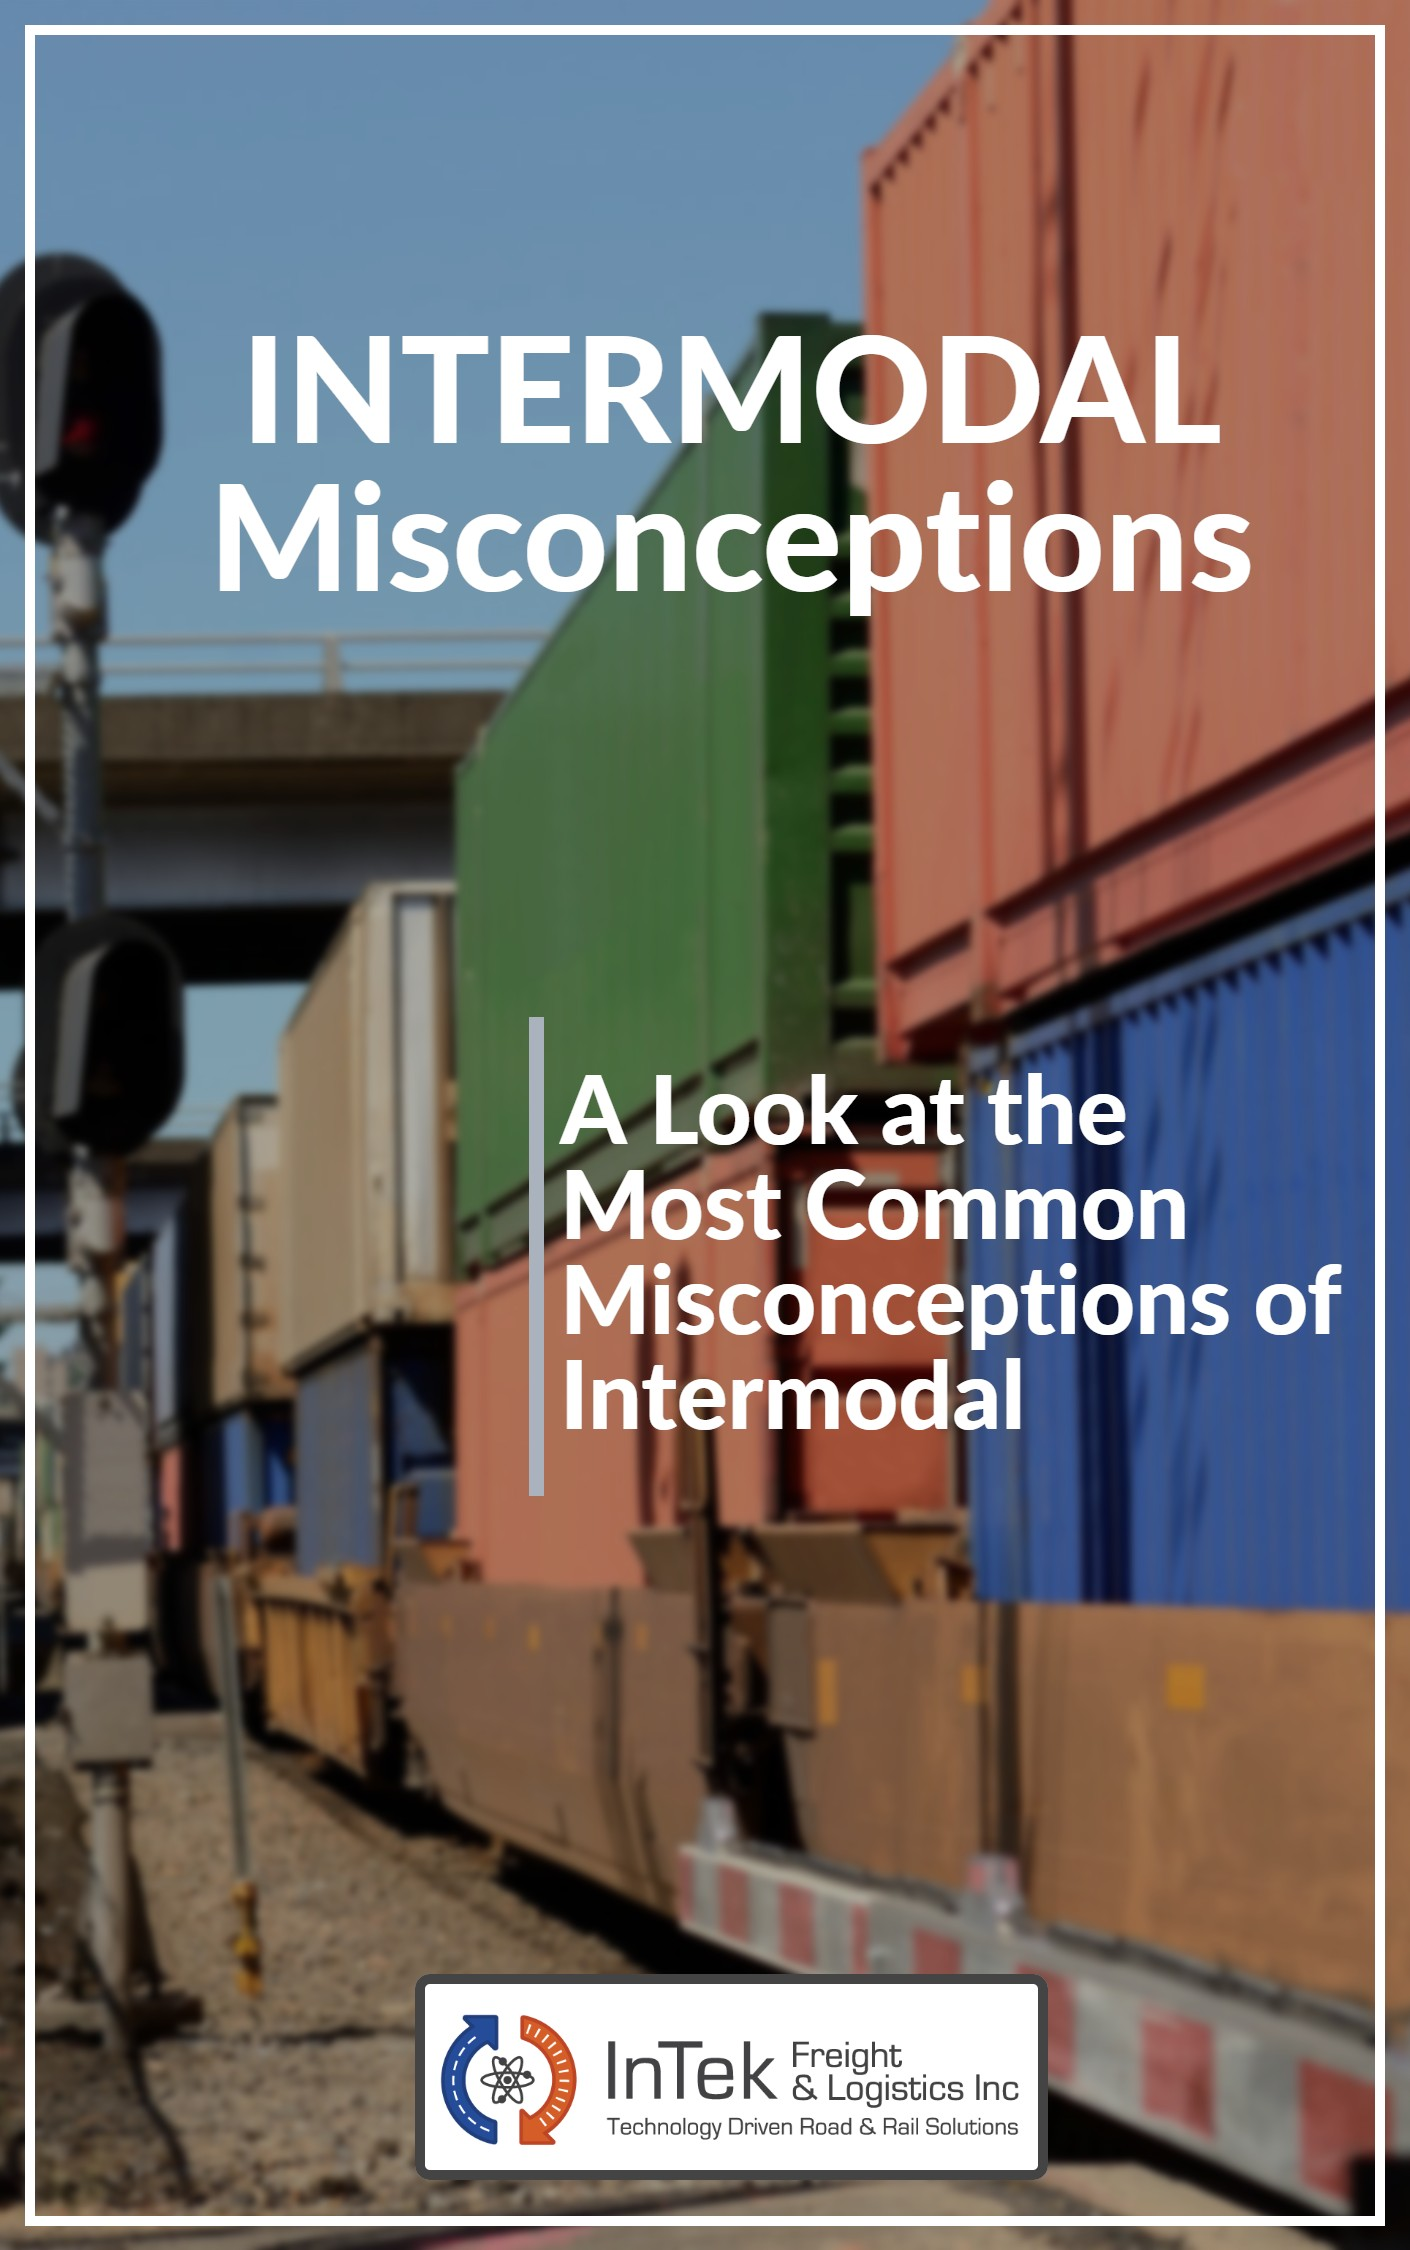 Misconceptions Cover copy.jpg